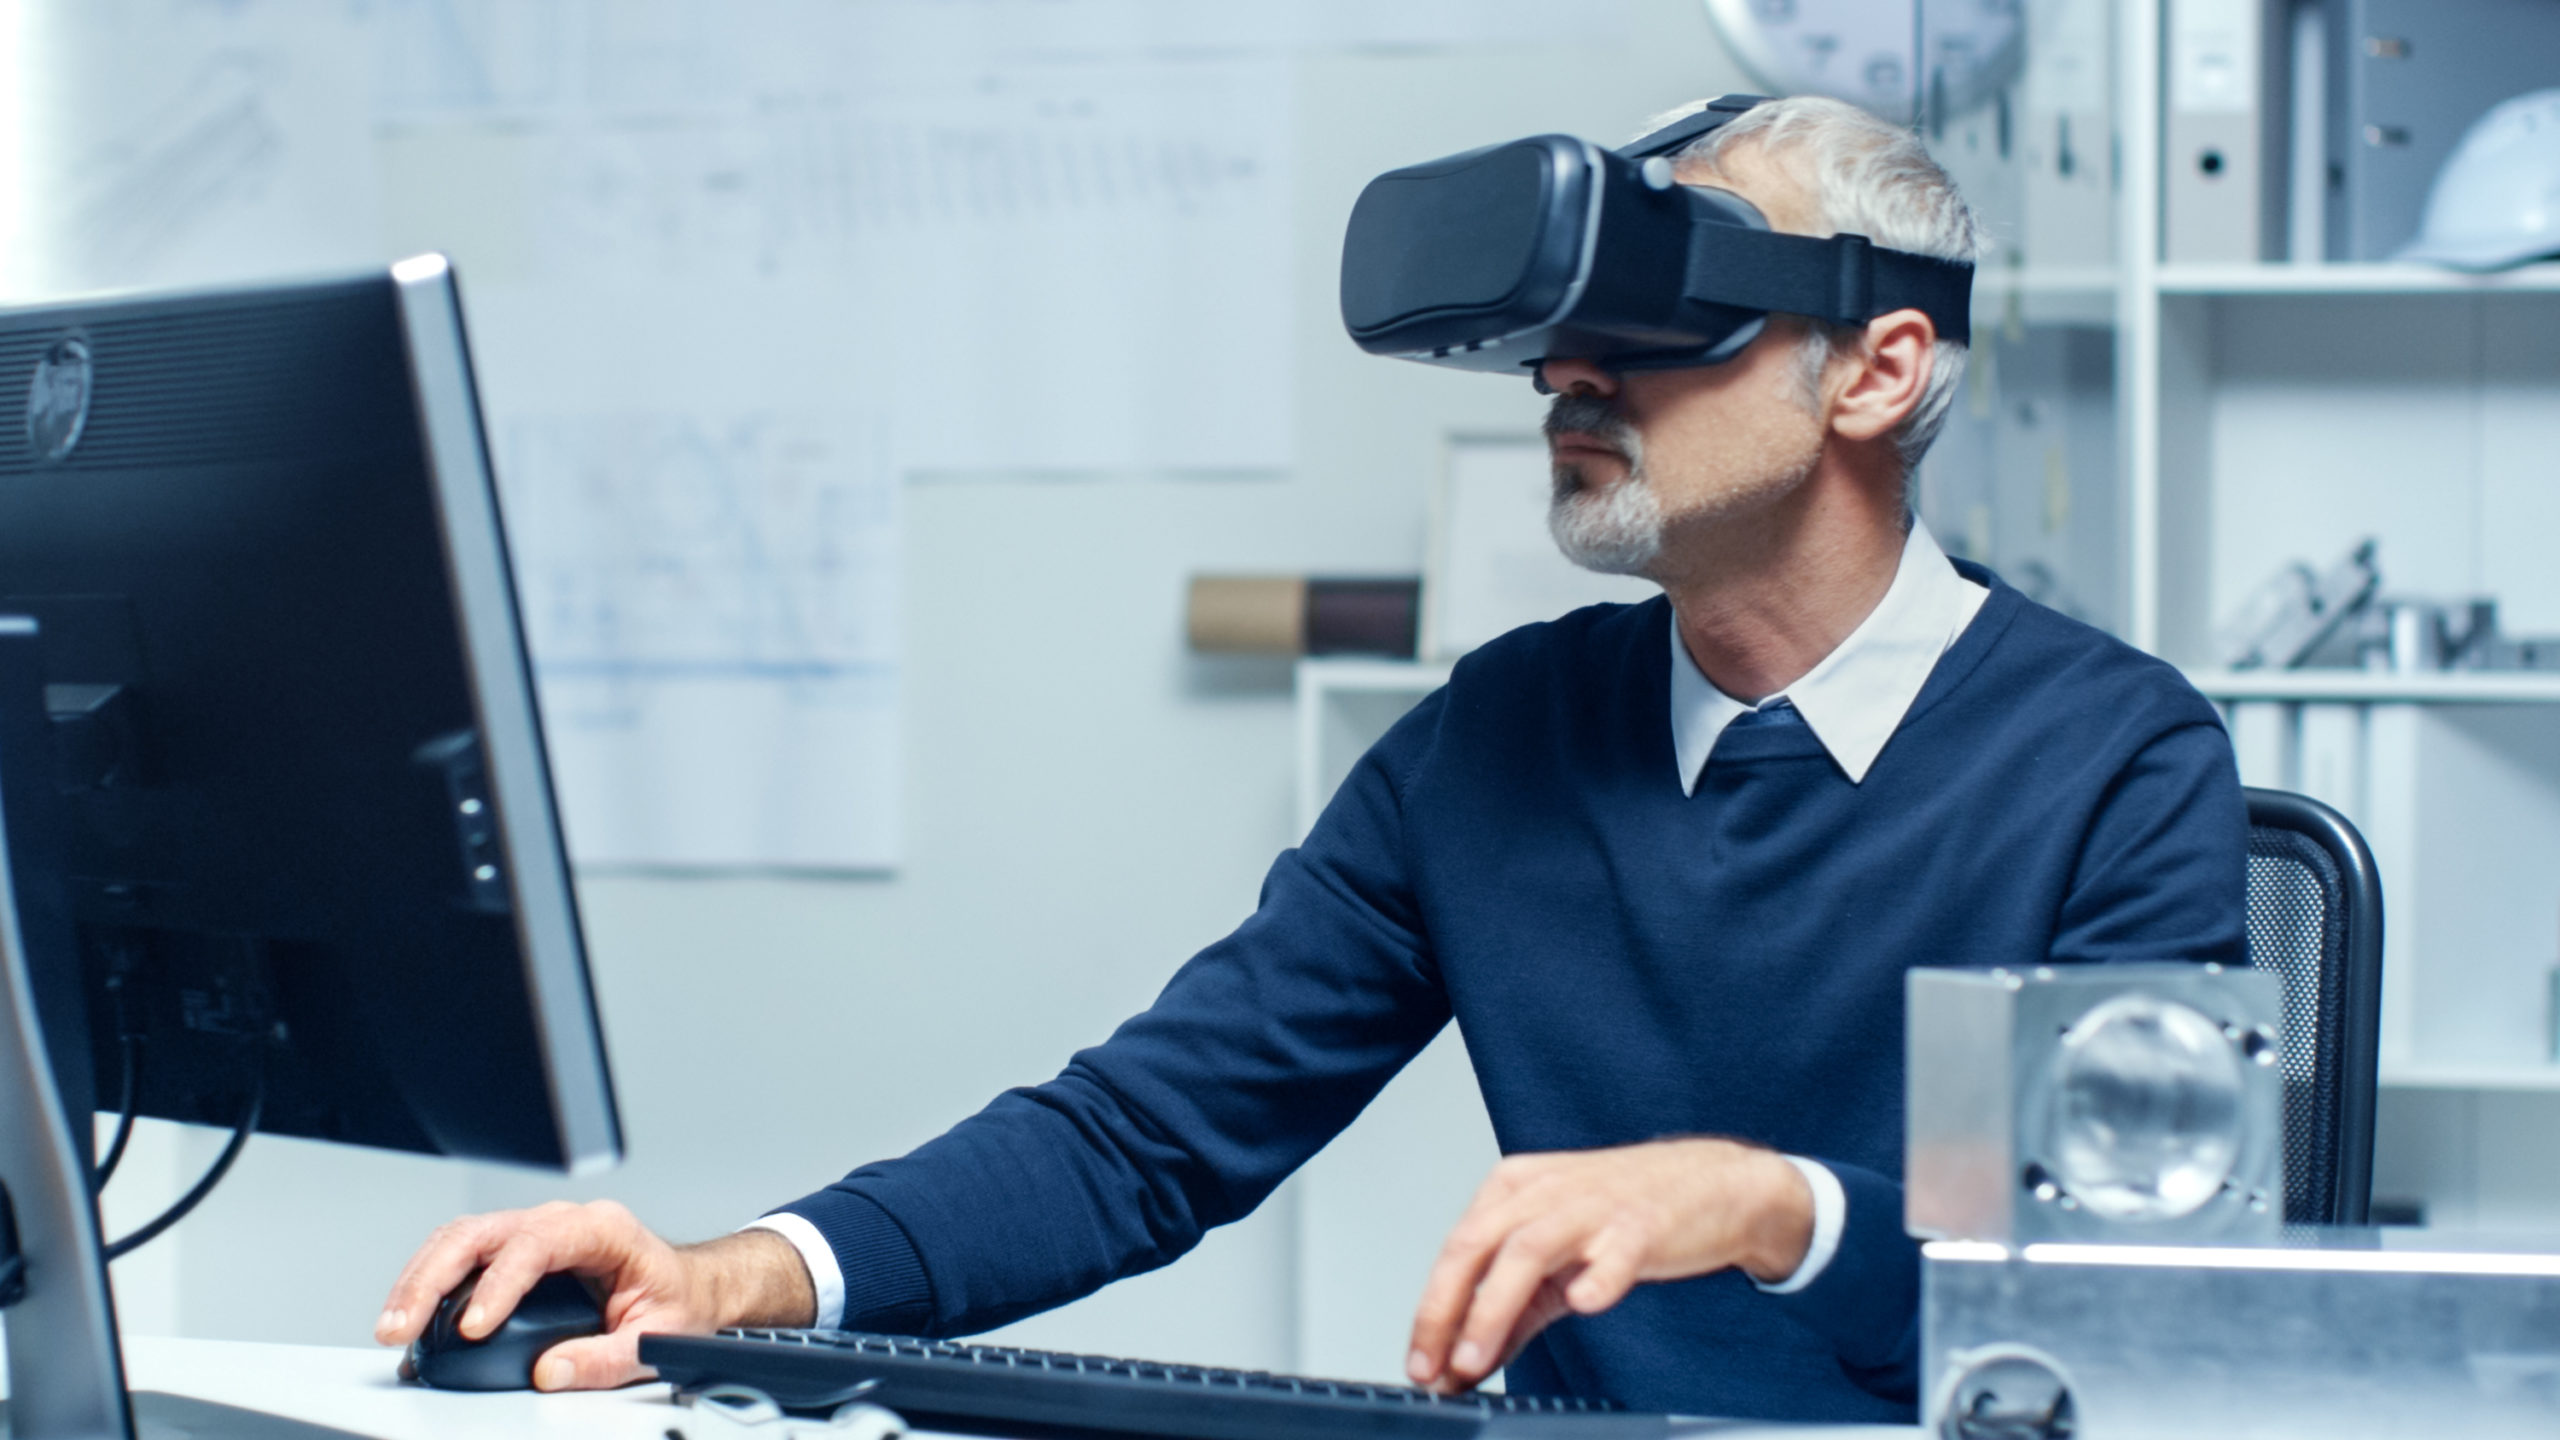 Virtual,Reality,Engineer,Works,With,Vr,Glasses,On,While,Simultaneously